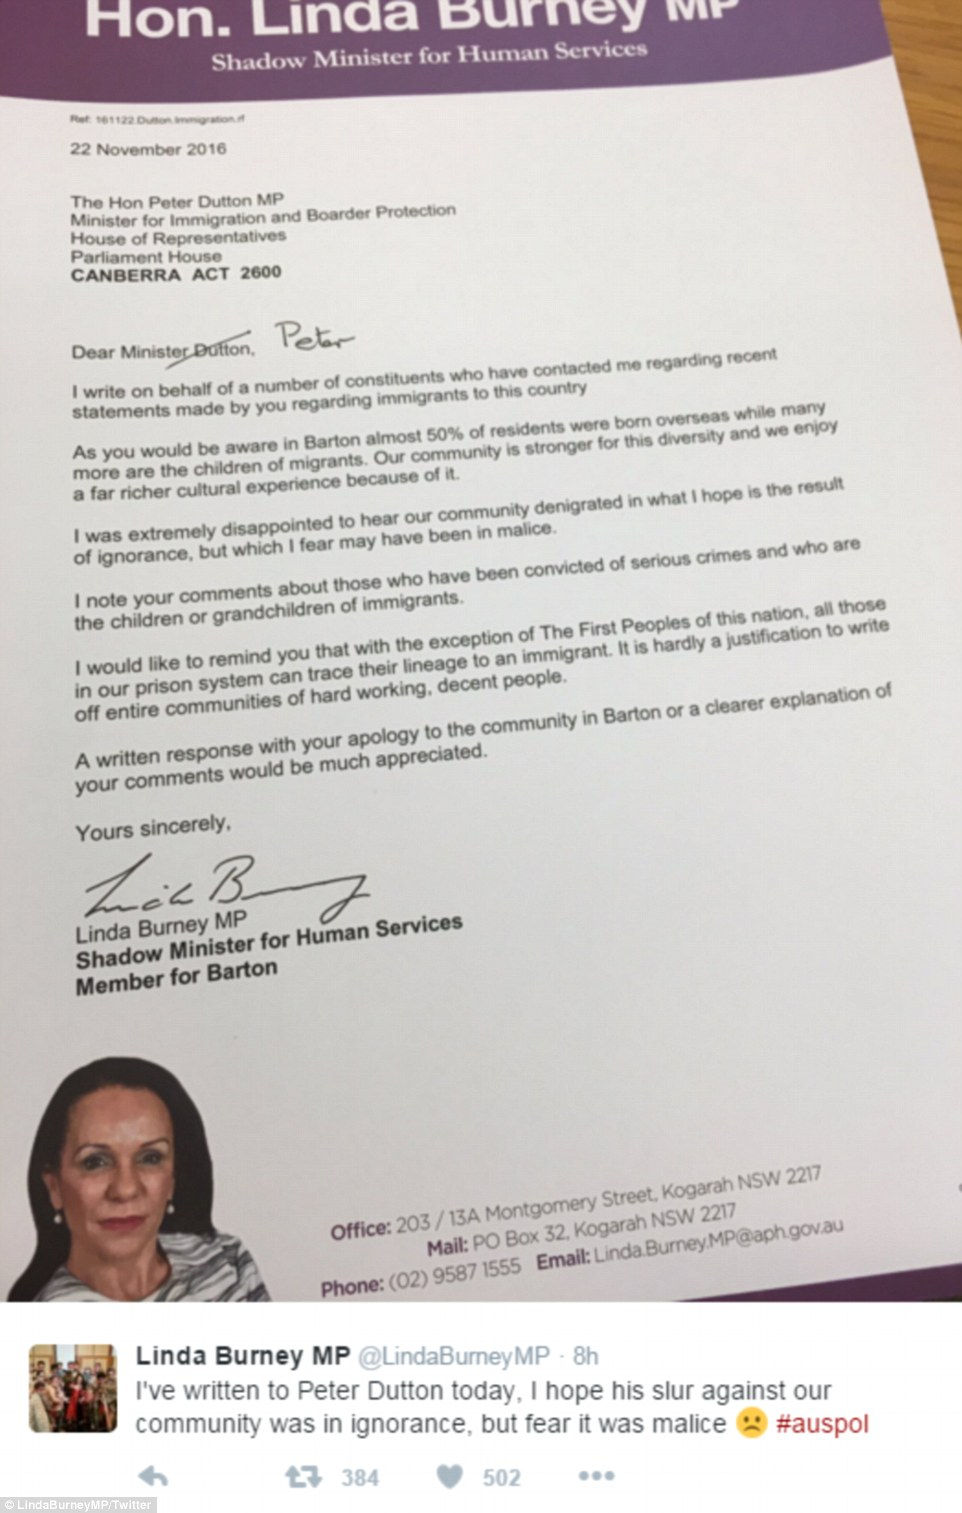 Linda Burney, Shadow Minister for Human Services, wrote a scathing personal letter addressed to Mr Dutton